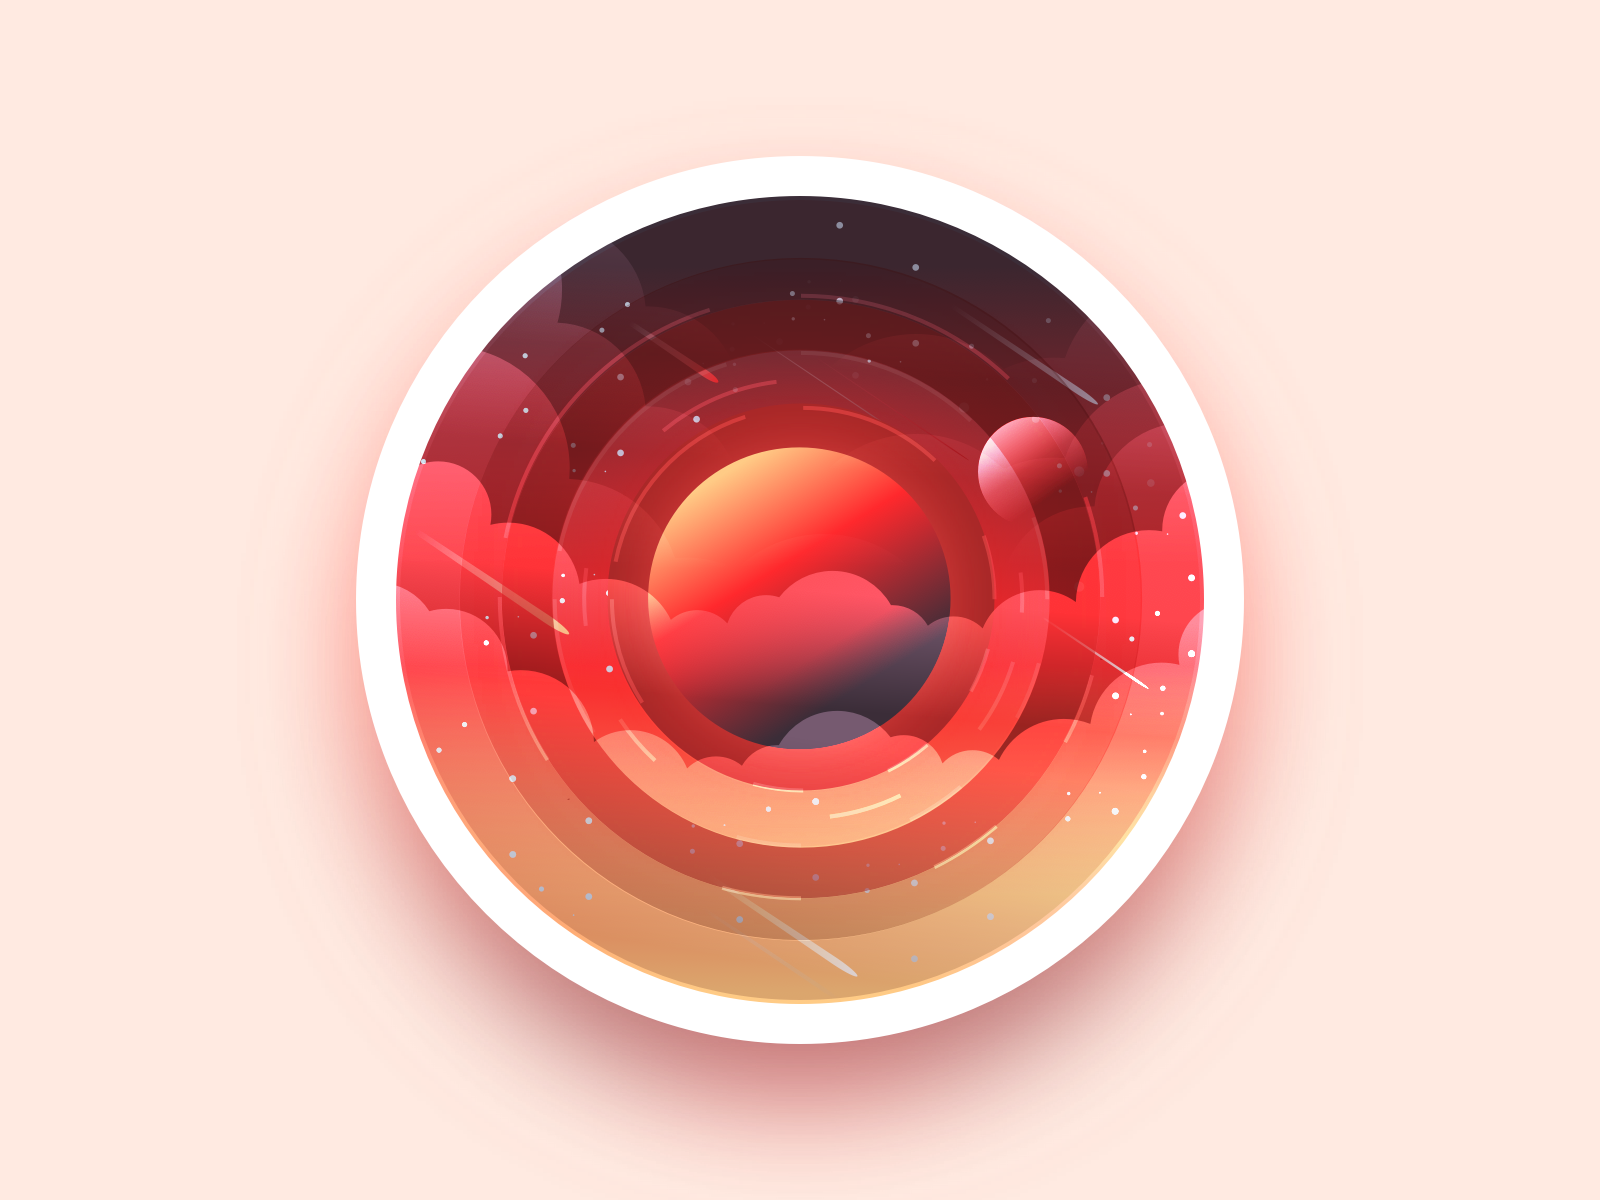 Planet planet 3d app type ui space project badge illustrator web identity vector icon sketch minimal flat art design illustration adobe